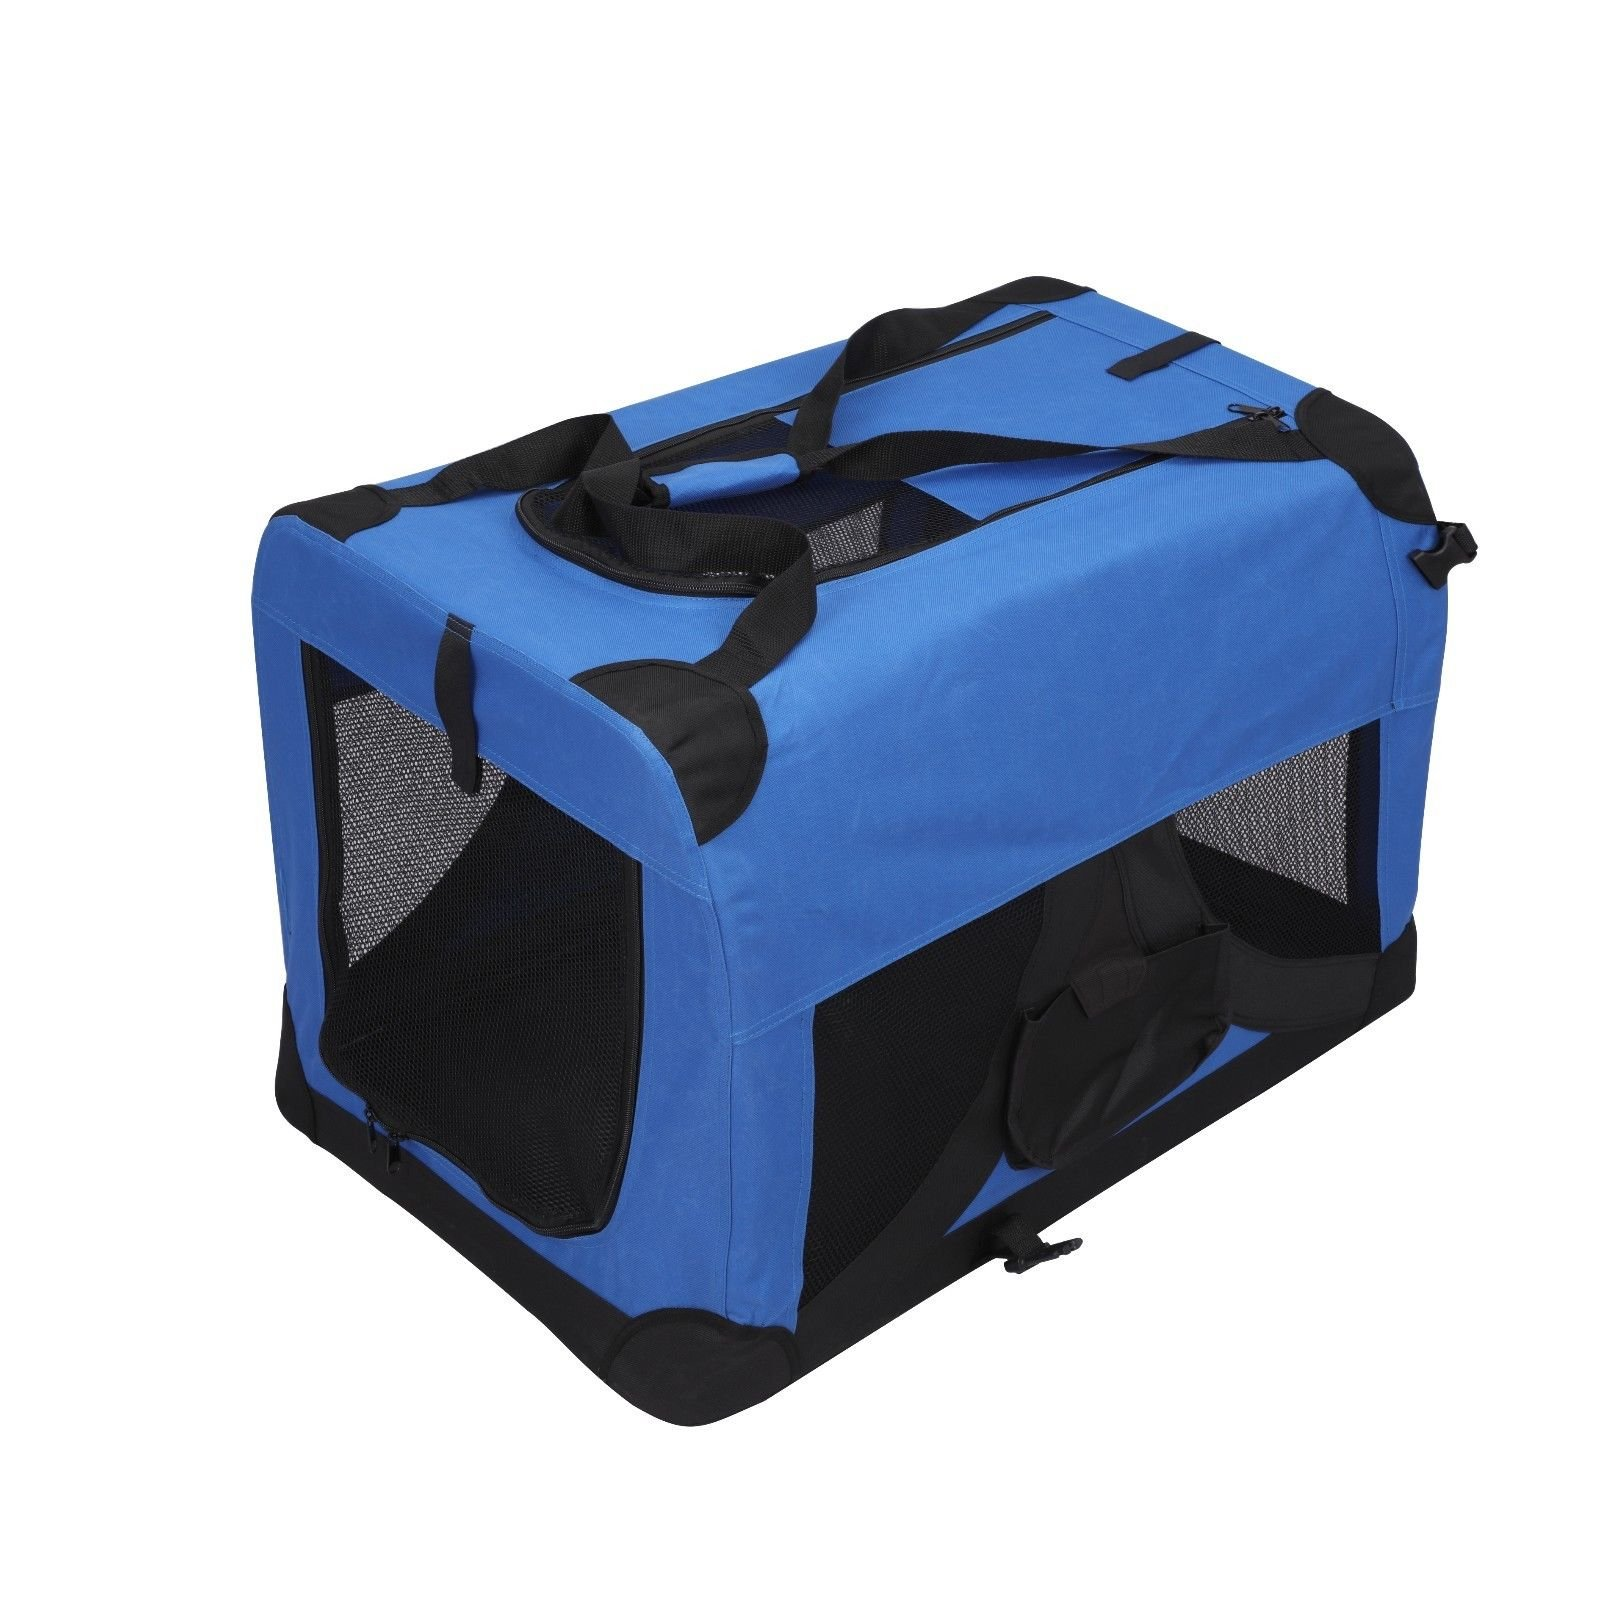 Magshion Folding Soft Crates Kennels Travel Carrier With Metal Frame, 40-Inch, For Pet Over 60 Pounds (Blue)